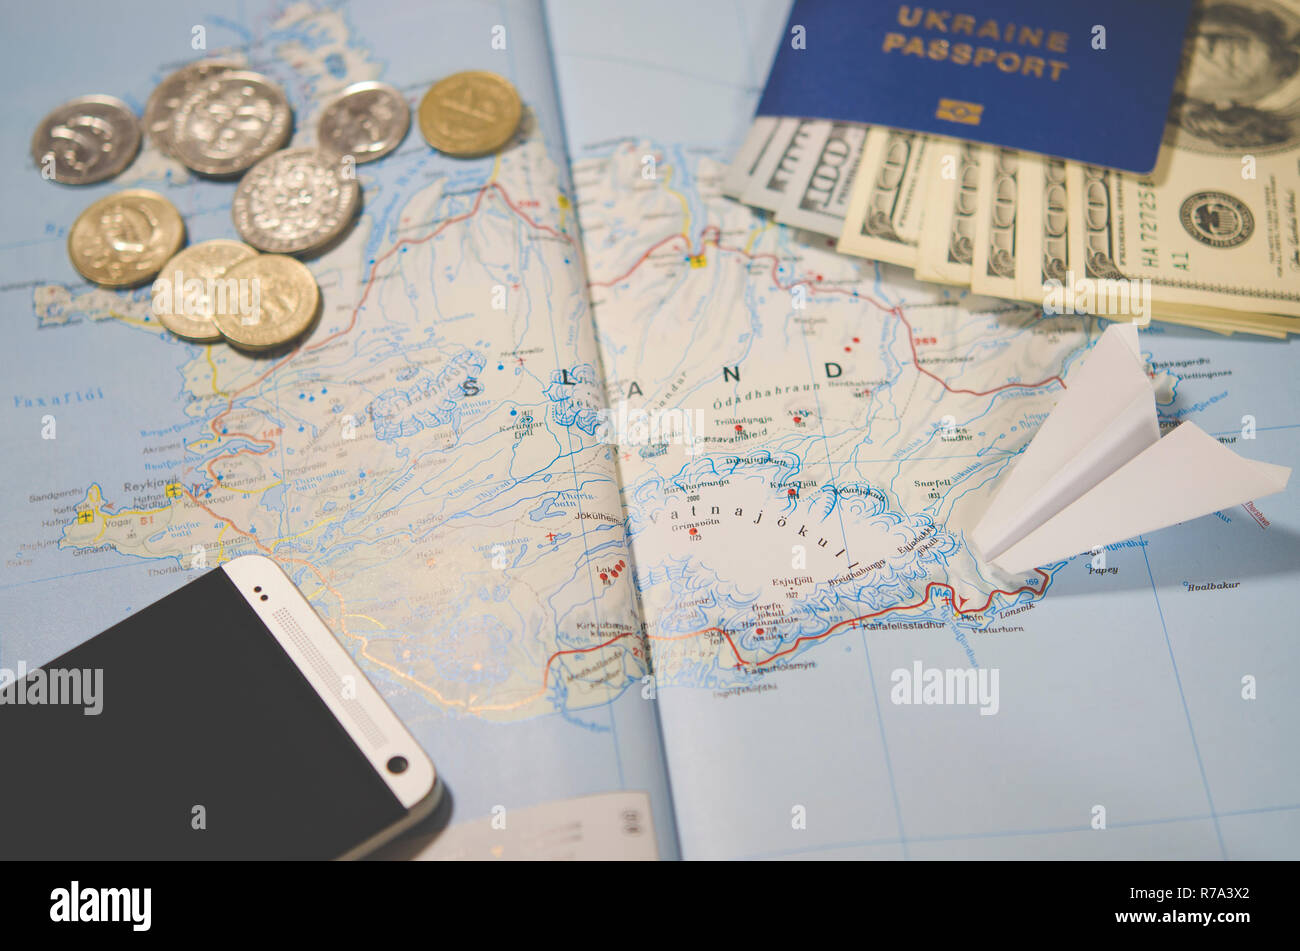 The plane, smartphone, biometric passport, dollars, coins and credit cards lie on a map of Iceland Stock Photo